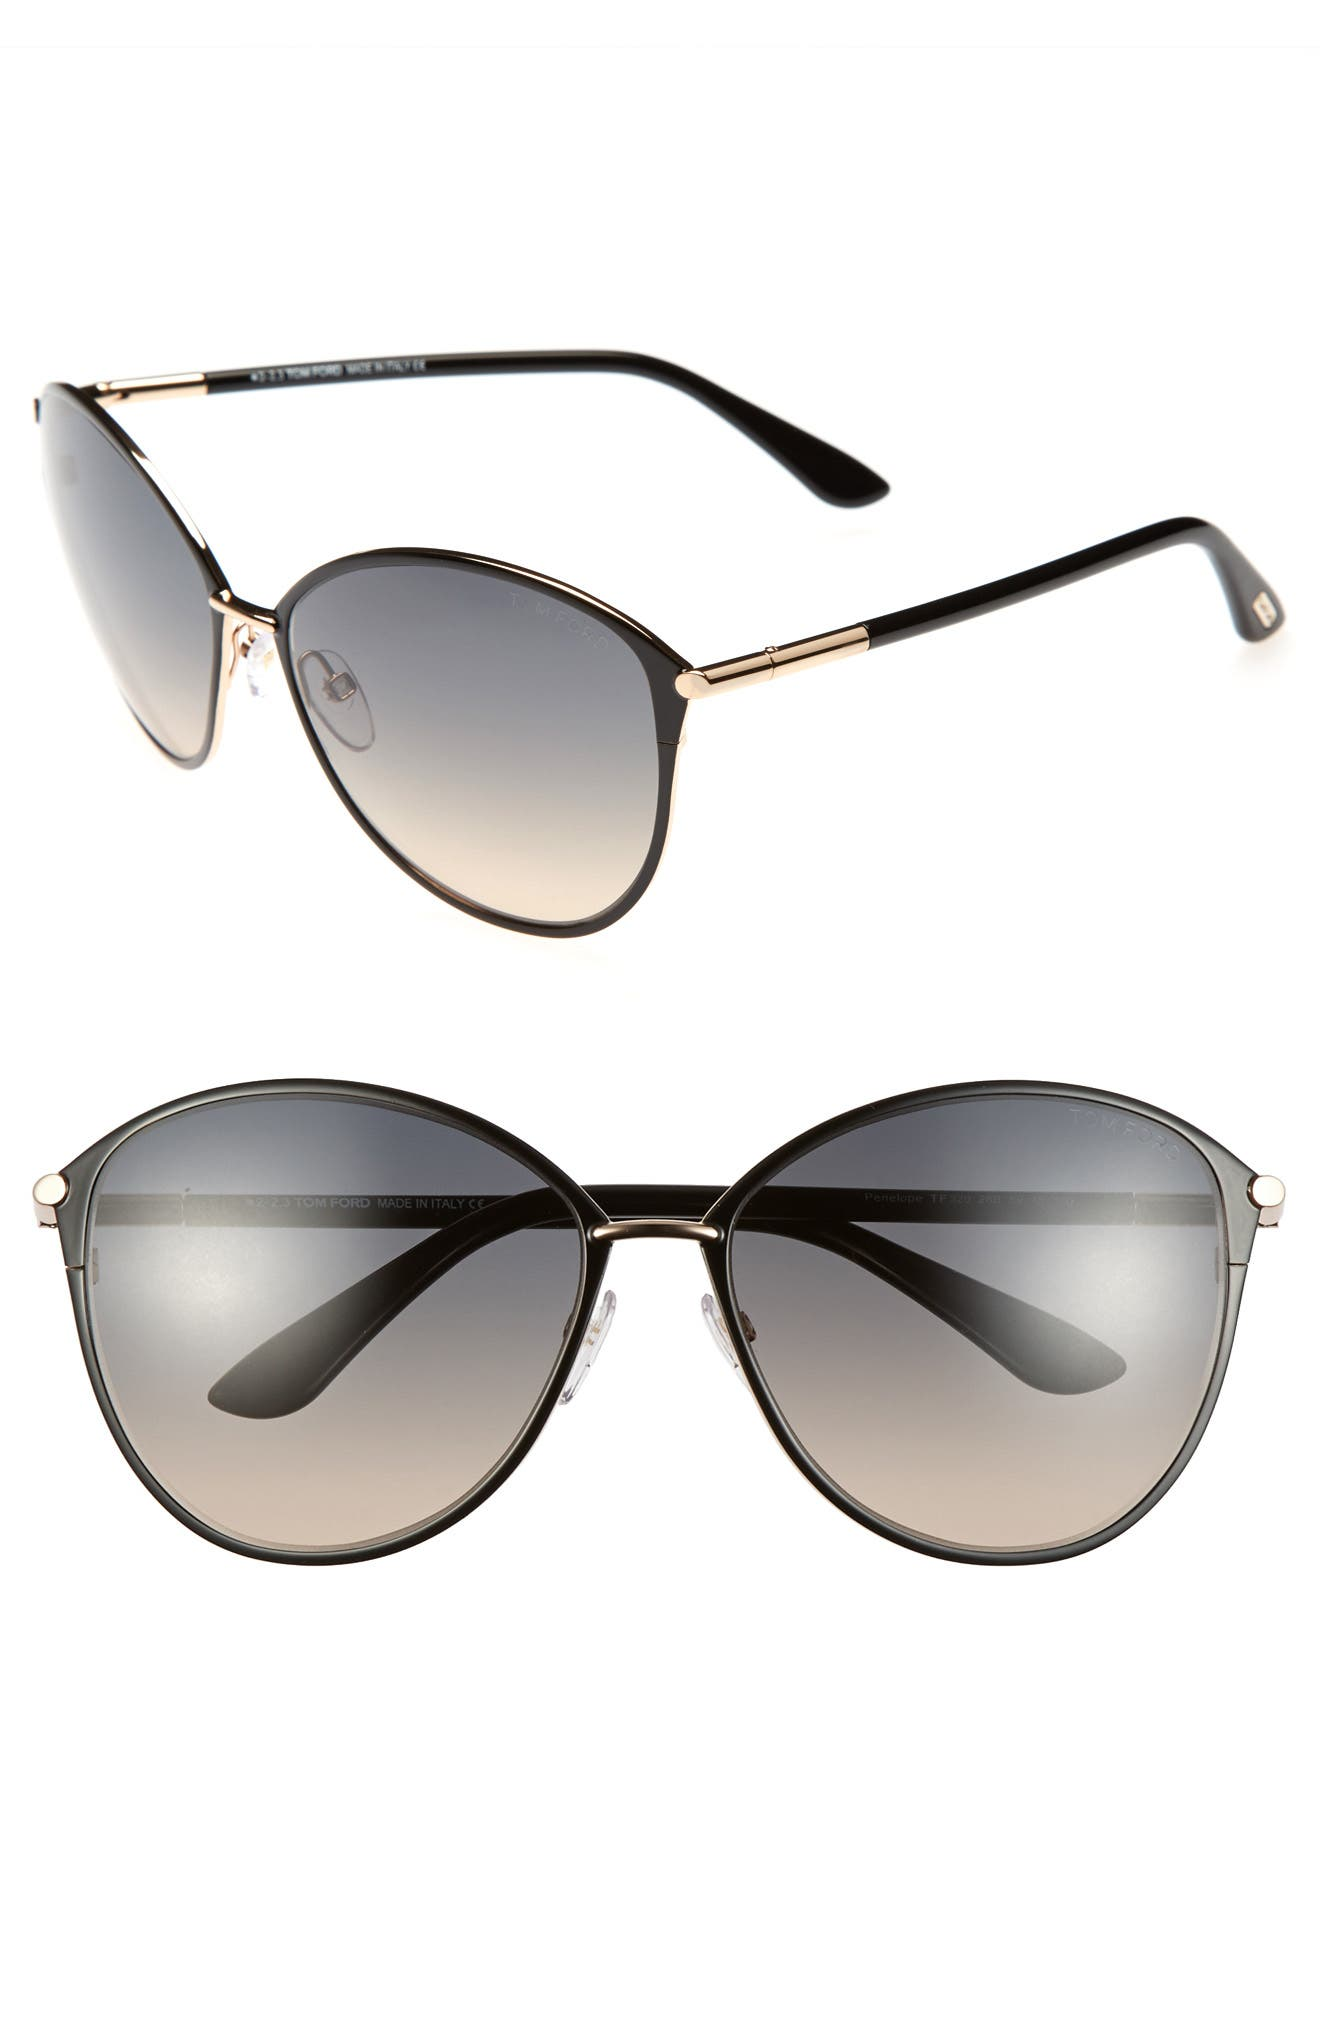 TOM FORD, Penelope 59mm Gradient Cat Eye Sunglasses, Main thumbnail 1, color, SHINY ROSE GOLD/ BLACK